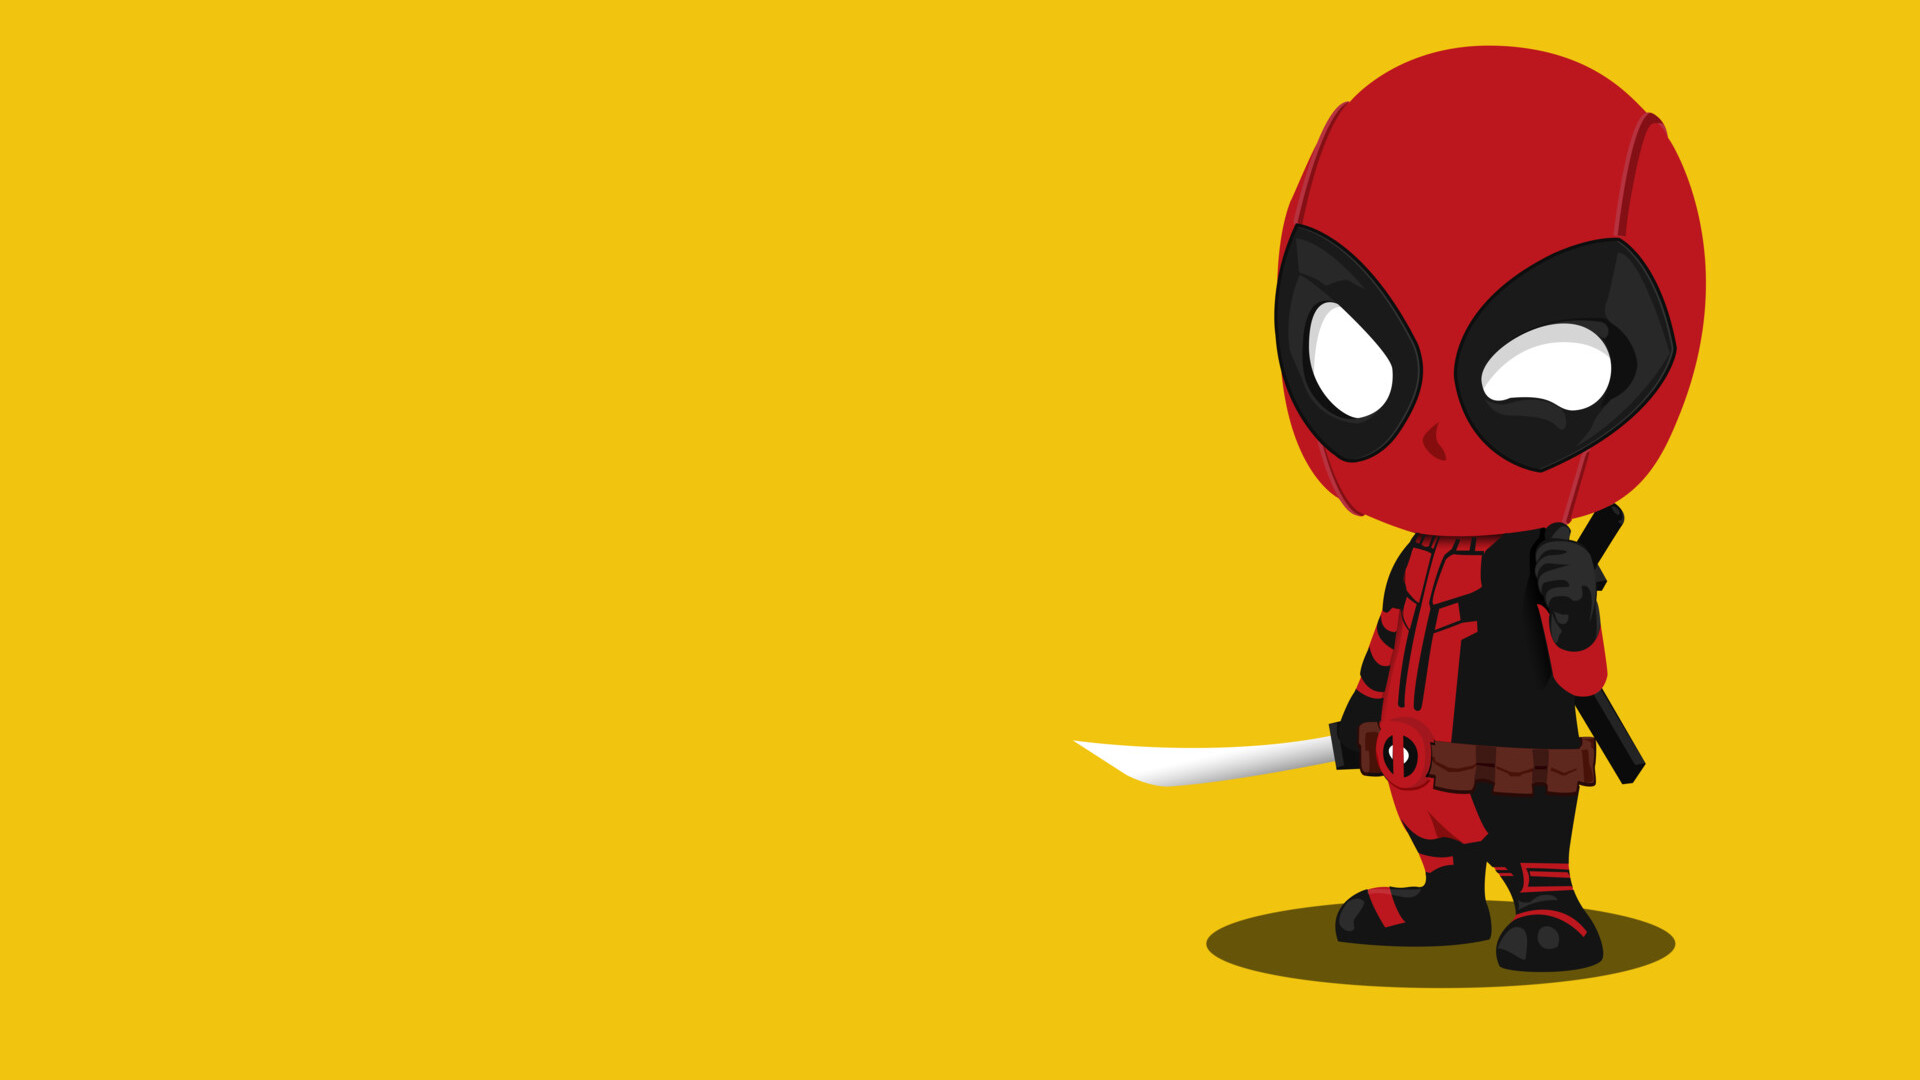 1920x1080 Kid Deadpool Minimalism Laptop Full Hd 1080p Hd 4k Wallpapers Images Backgrounds Photos And Pictures